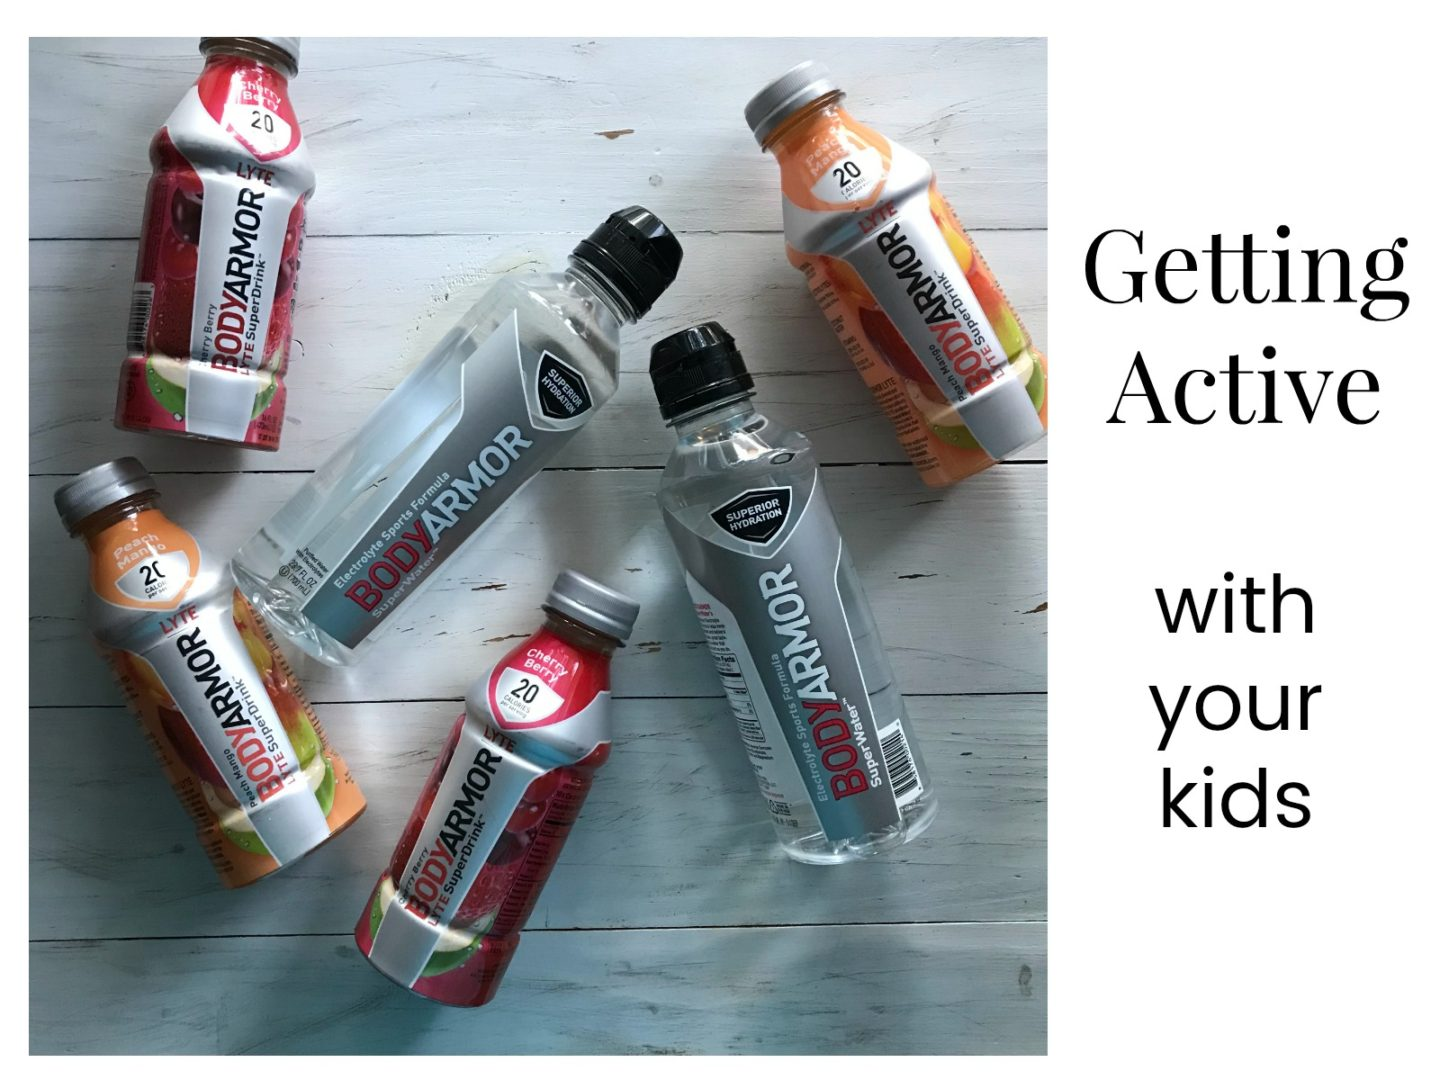 Getting Active with Your Kids | AlwaysMovingMommy.com | Exercising doesn't have to be another chore for you to cross off your to do list. Getting active with your kids is a great way to help get in shape. #ad #Switch2BODYARMOR #getactive